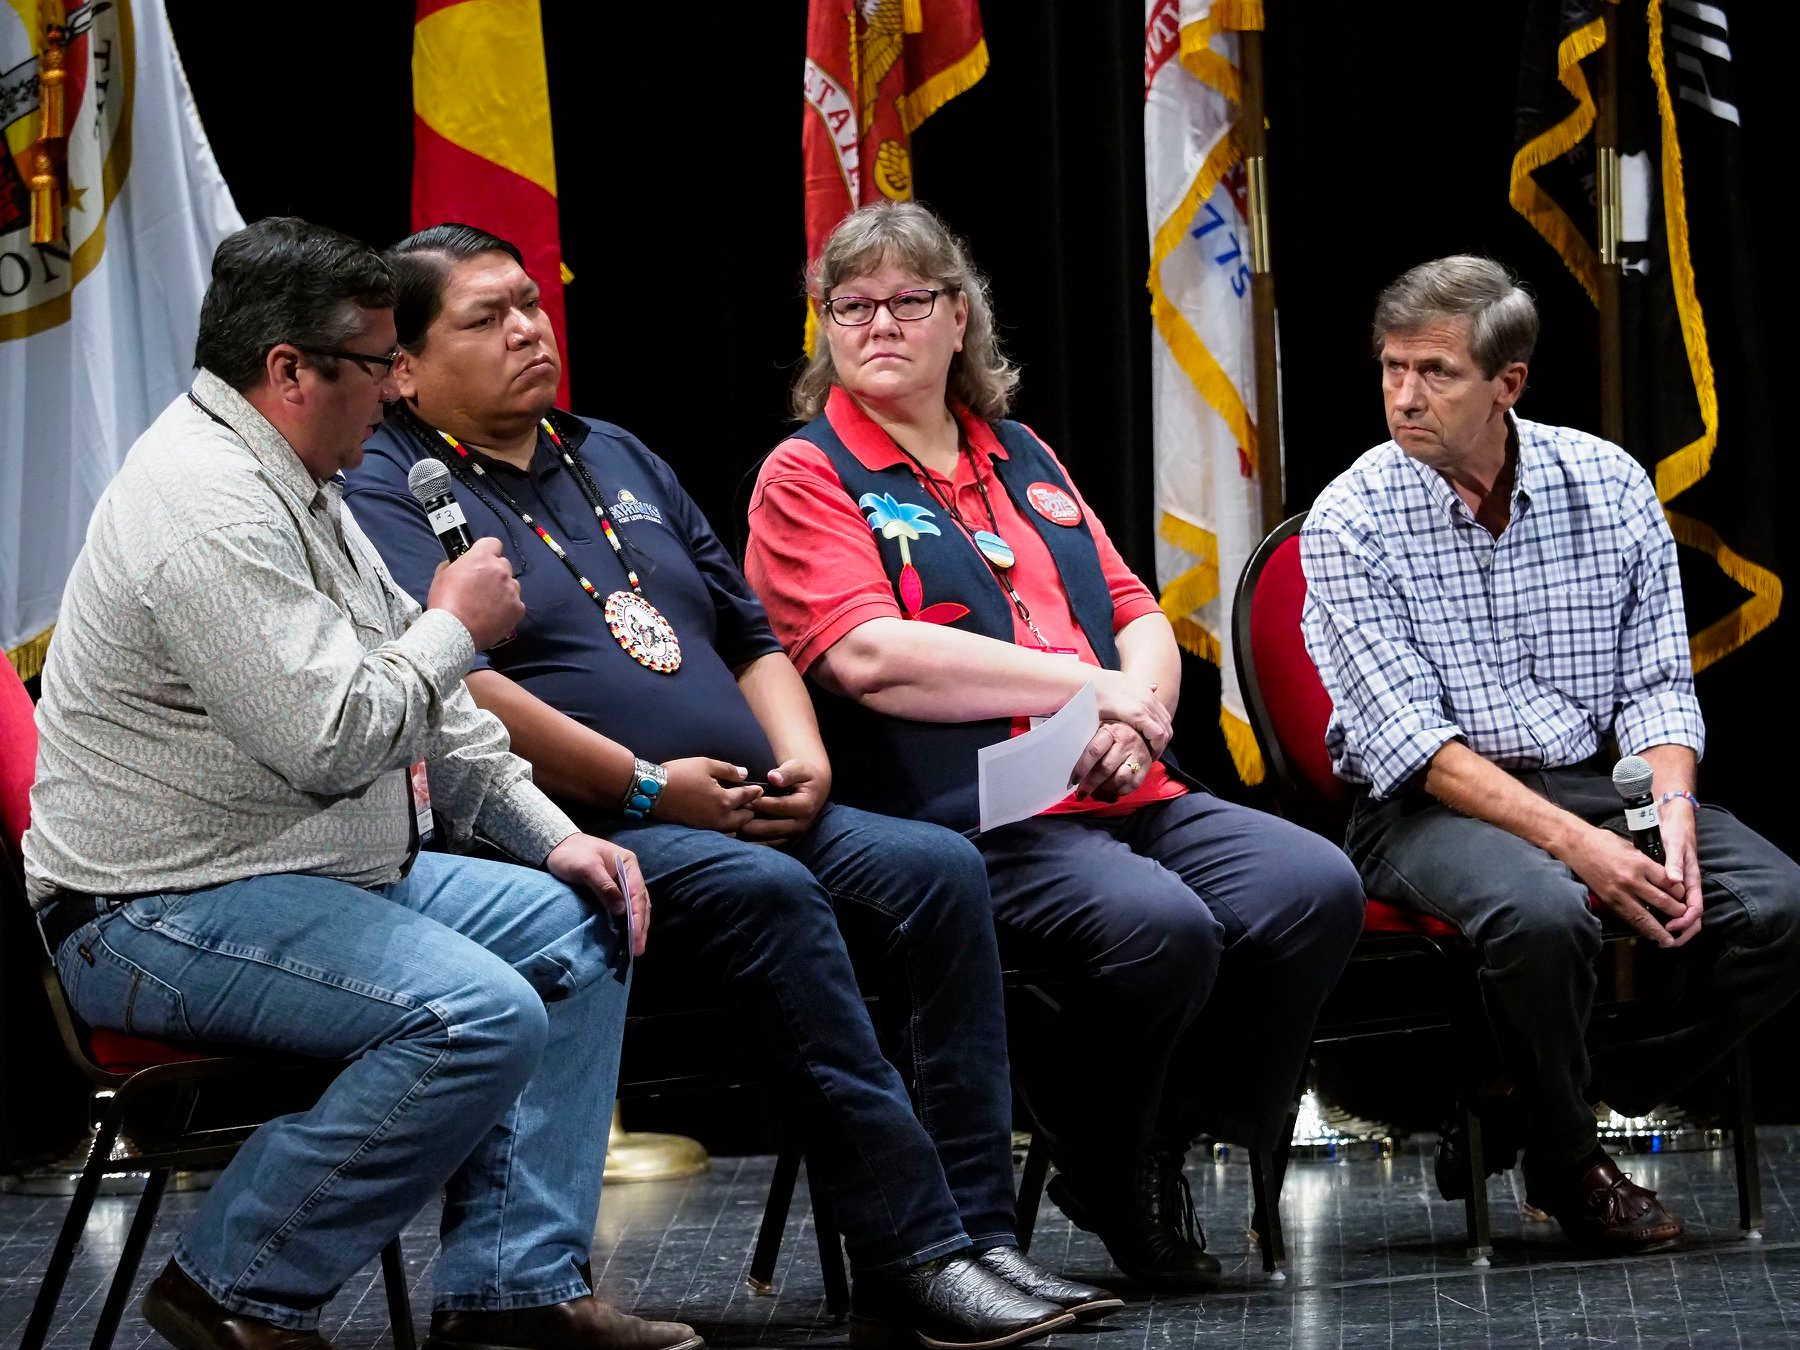 AUDIO/VIDEO: Joe Sestak at Frank LaMere Native American Presidential Forum